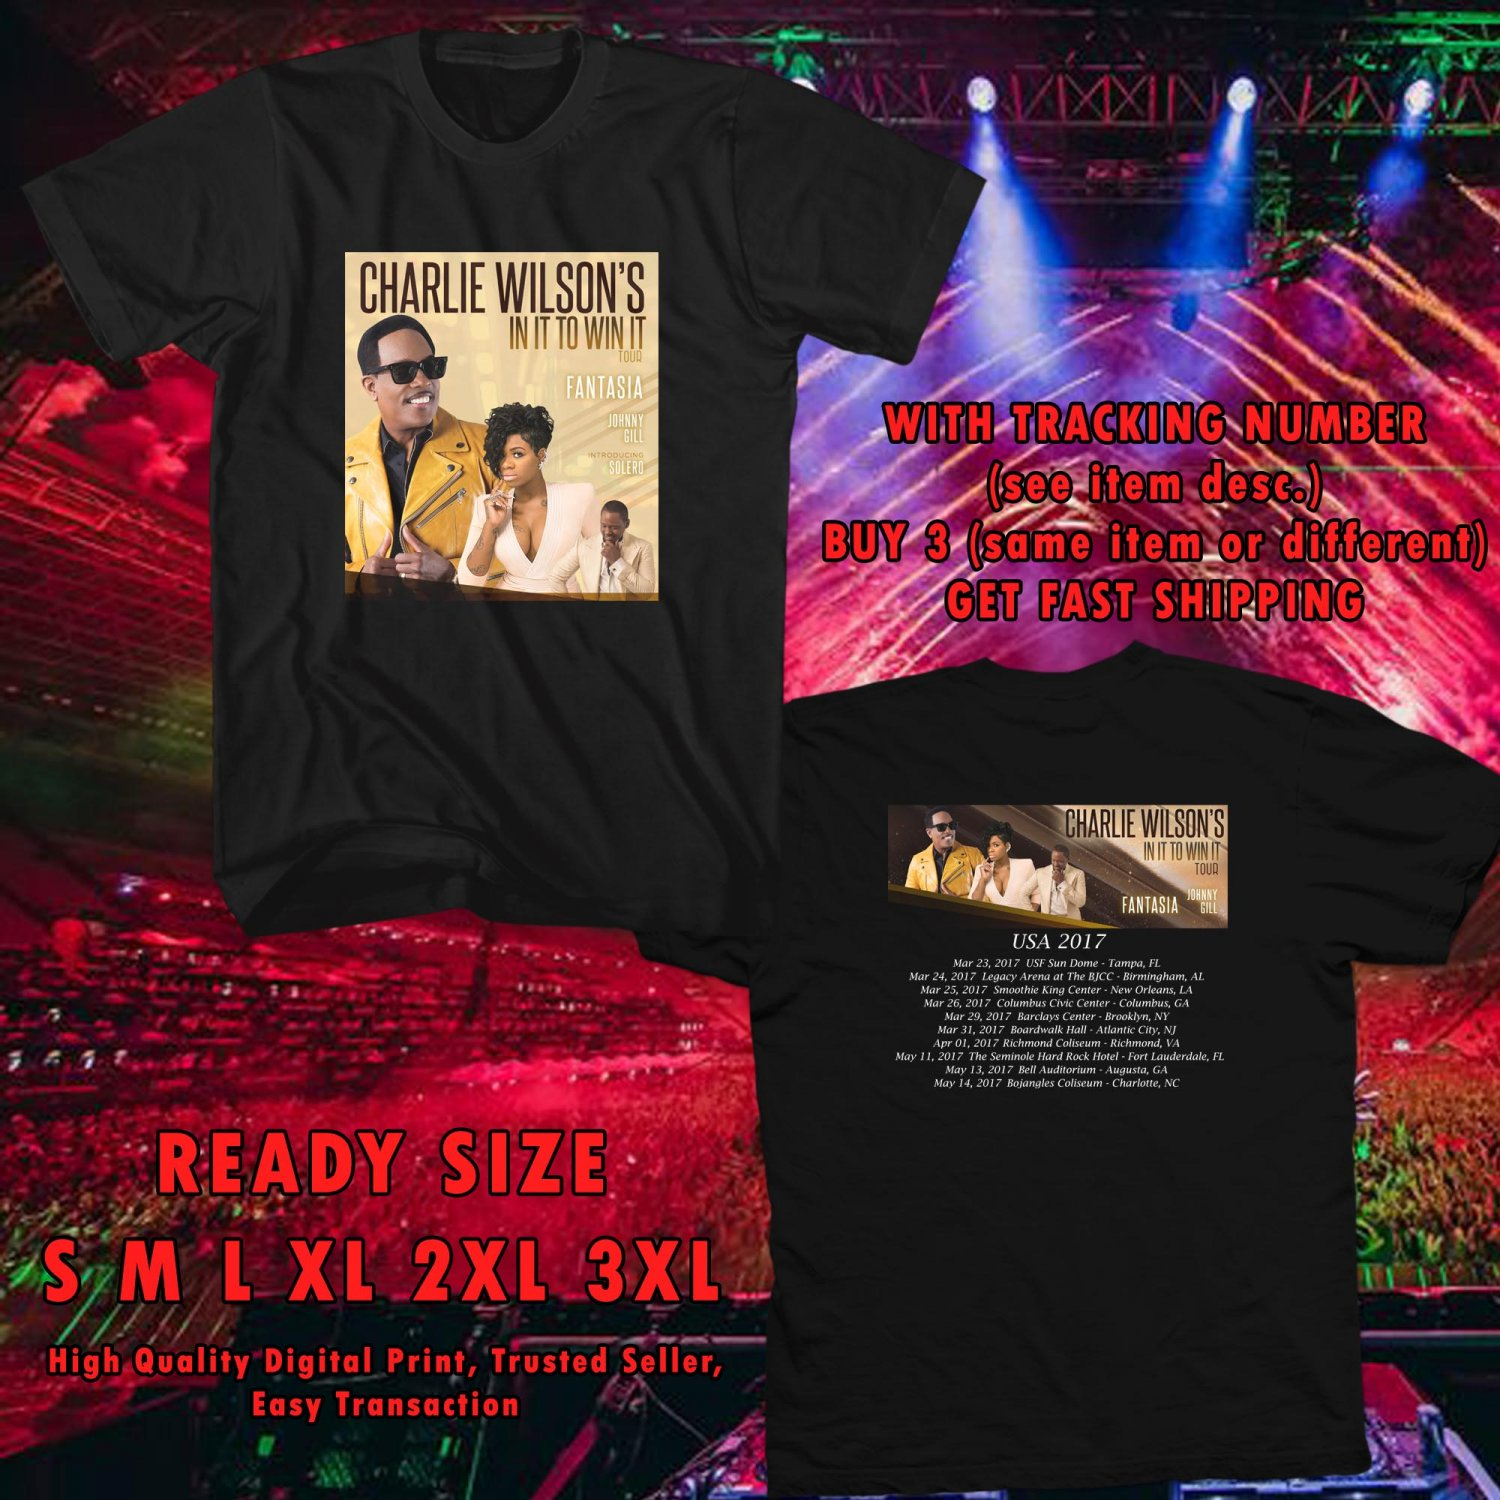 NEW CHARLIE WILSON IN IT TO WIN IT TOUR 2017 black TEE W DATES DMTR 221